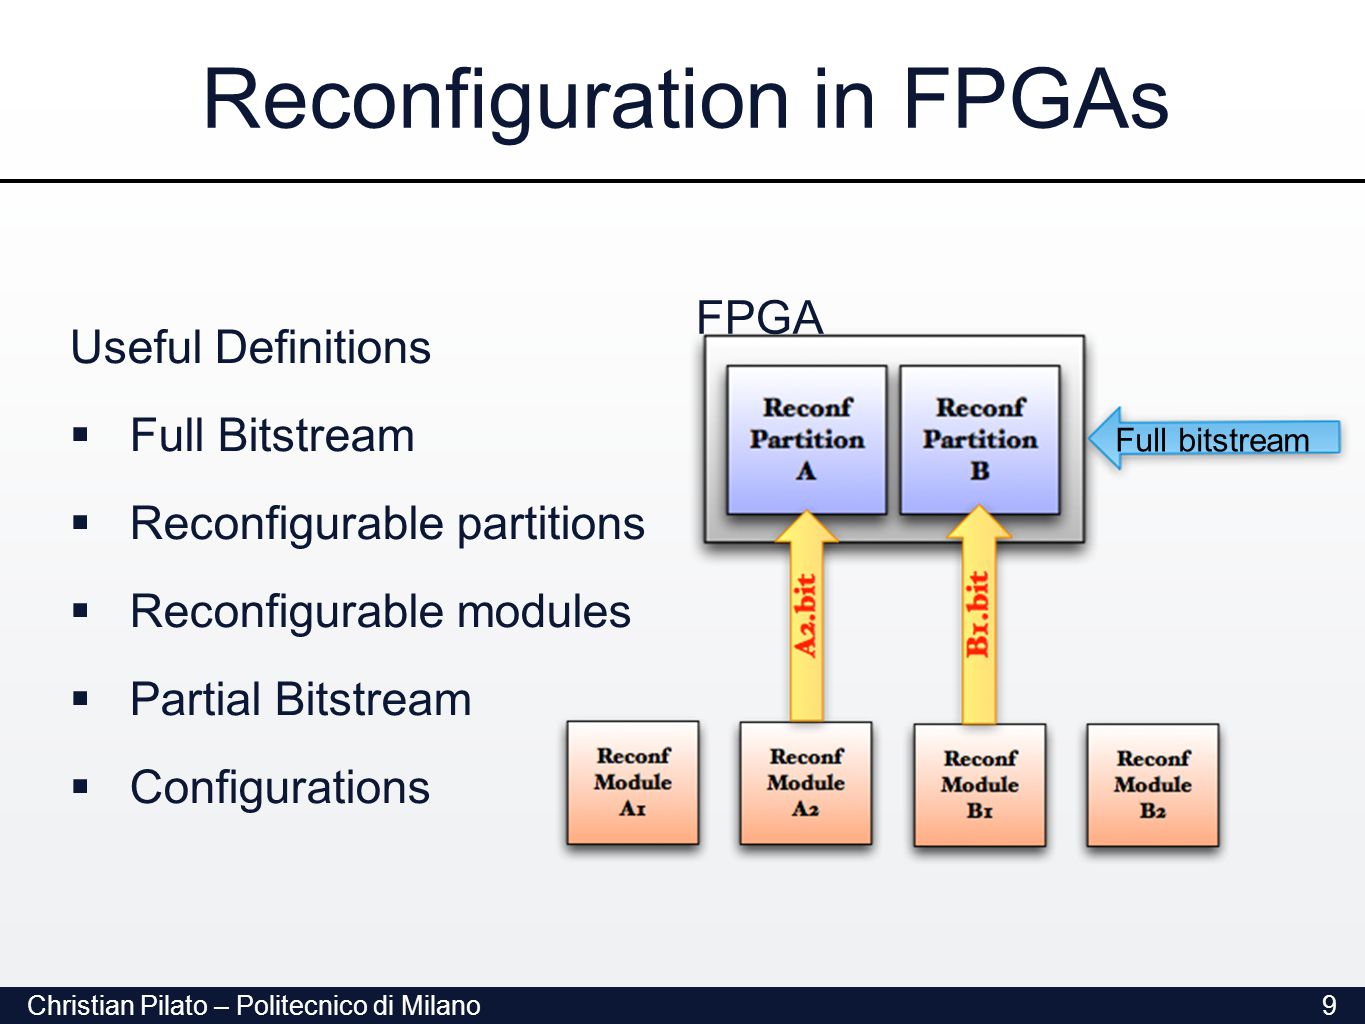 Christian Pilato – Politecnico di Milano9 Reconfiguration in FPGAs Useful Definitions  Full Bitstream  Reconfigurable partitions  Reconfigurable modules  Partial Bitstream  Configurations FPGA Full bitstream